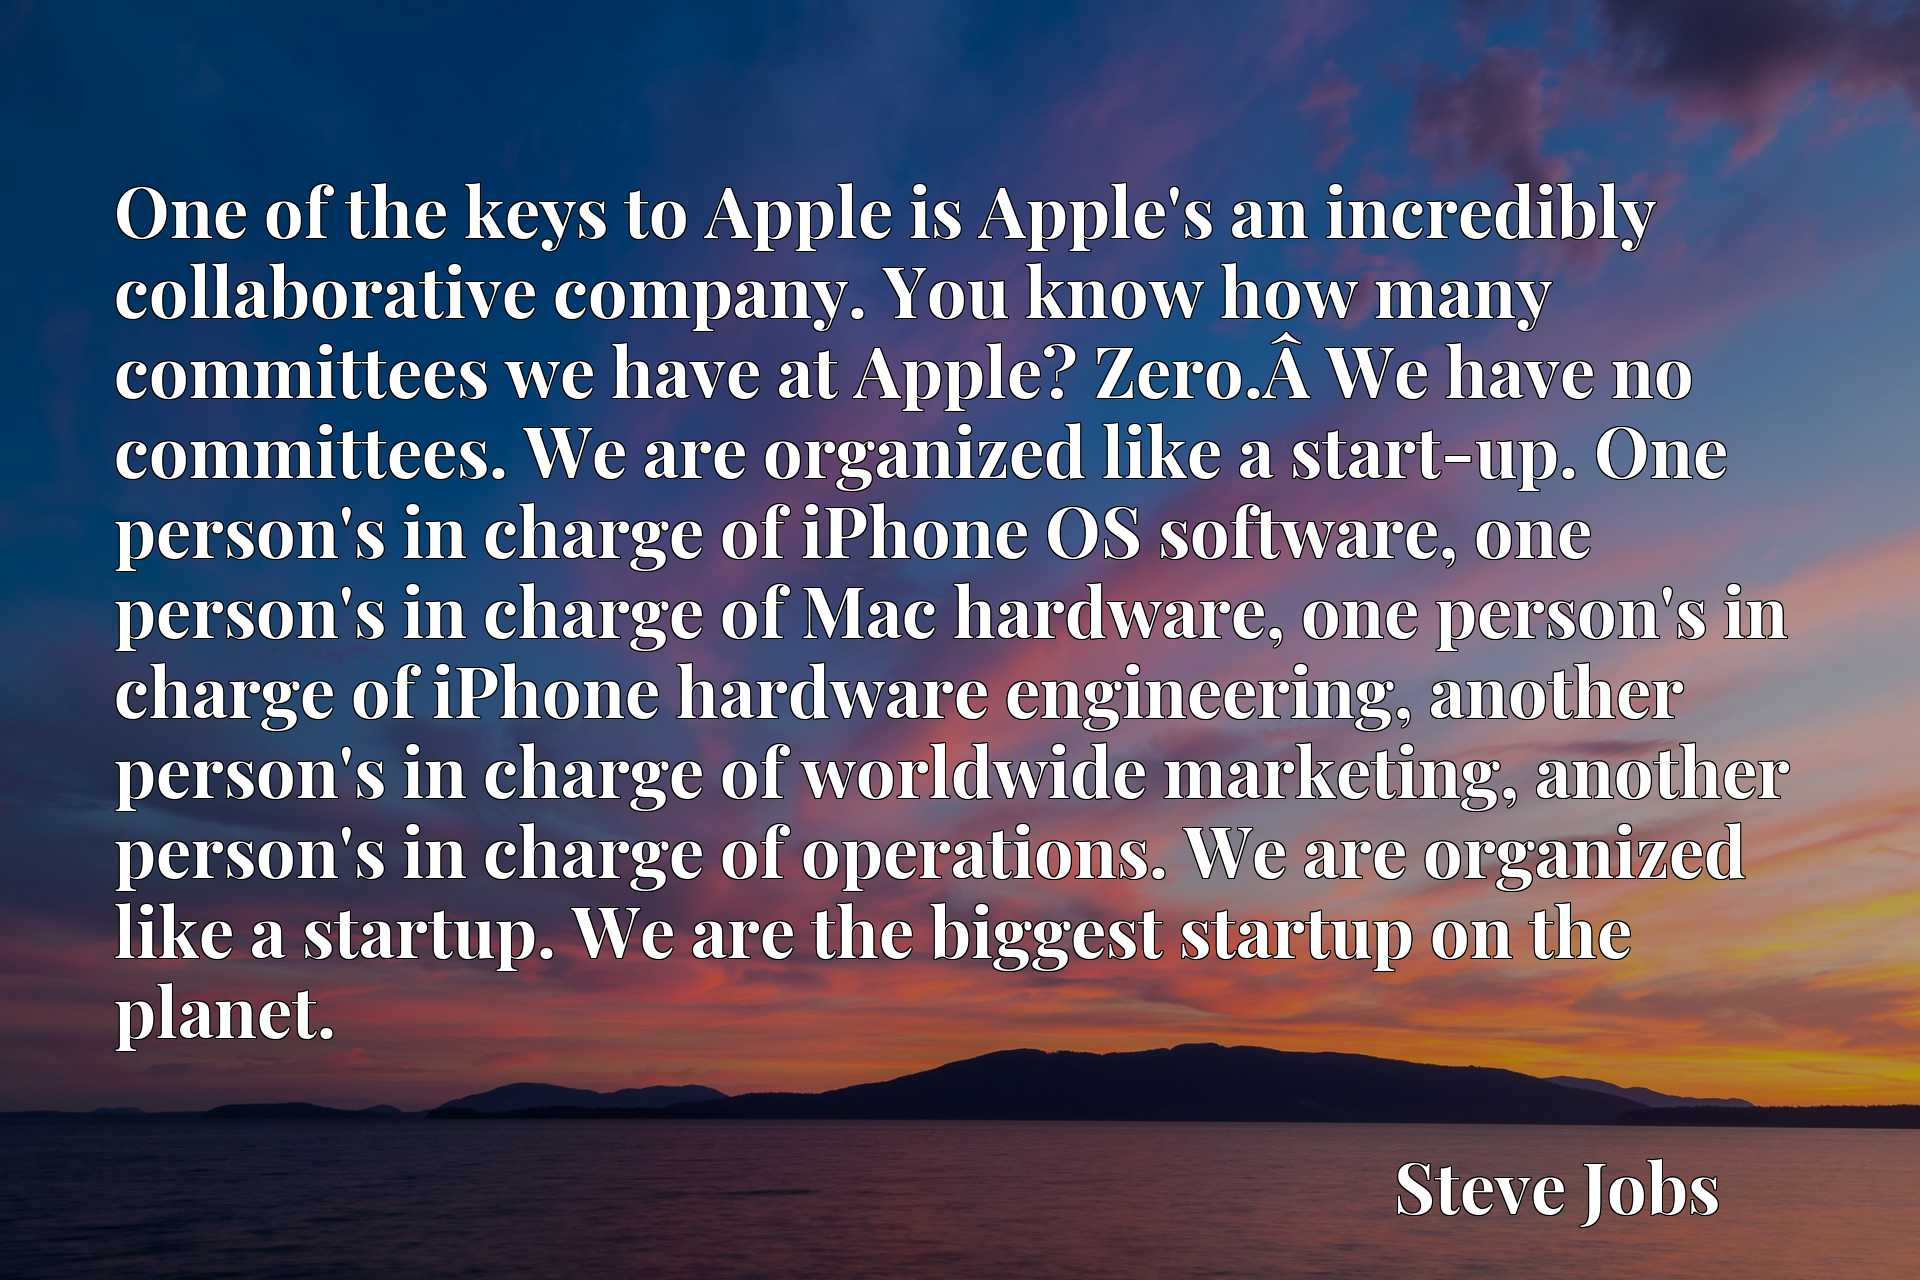 One of the keys to Apple is Apple's an incredibly collaborative company. You know how many committees we have at Apple? Zero.Axa0We have no committees. We are organized like a start-up. One person's in charge of iPhone OS software, one person's in charge of Mac hardware, one person's in charge of iPhone hardware engineering, another person's in charge of worldwide marketing, another person's in charge of operations. We are organized like a startup. We are the biggest startup on the planet.